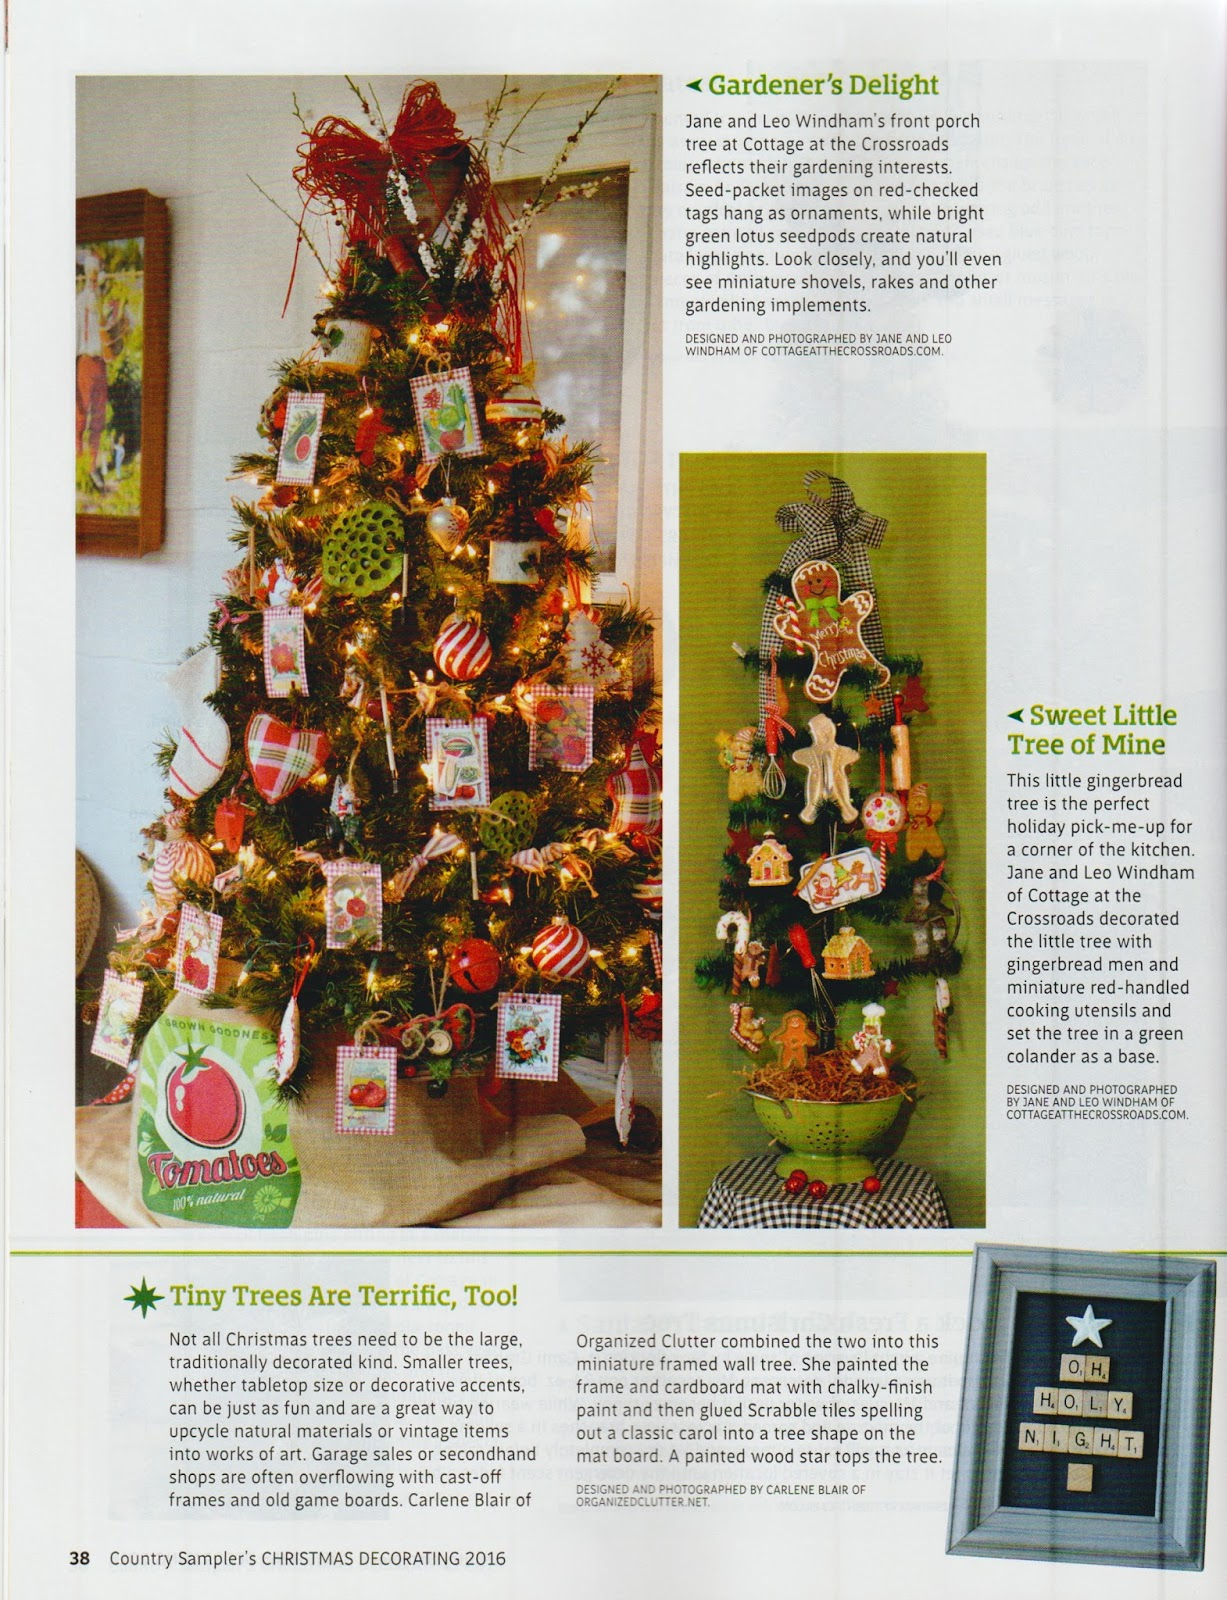 Two features in country samplers christmas decorating magazine one of the features was my scrabble tile framed christmas tree this project was easy and fun and if you would like to make one for yourself the project solutioingenieria Images